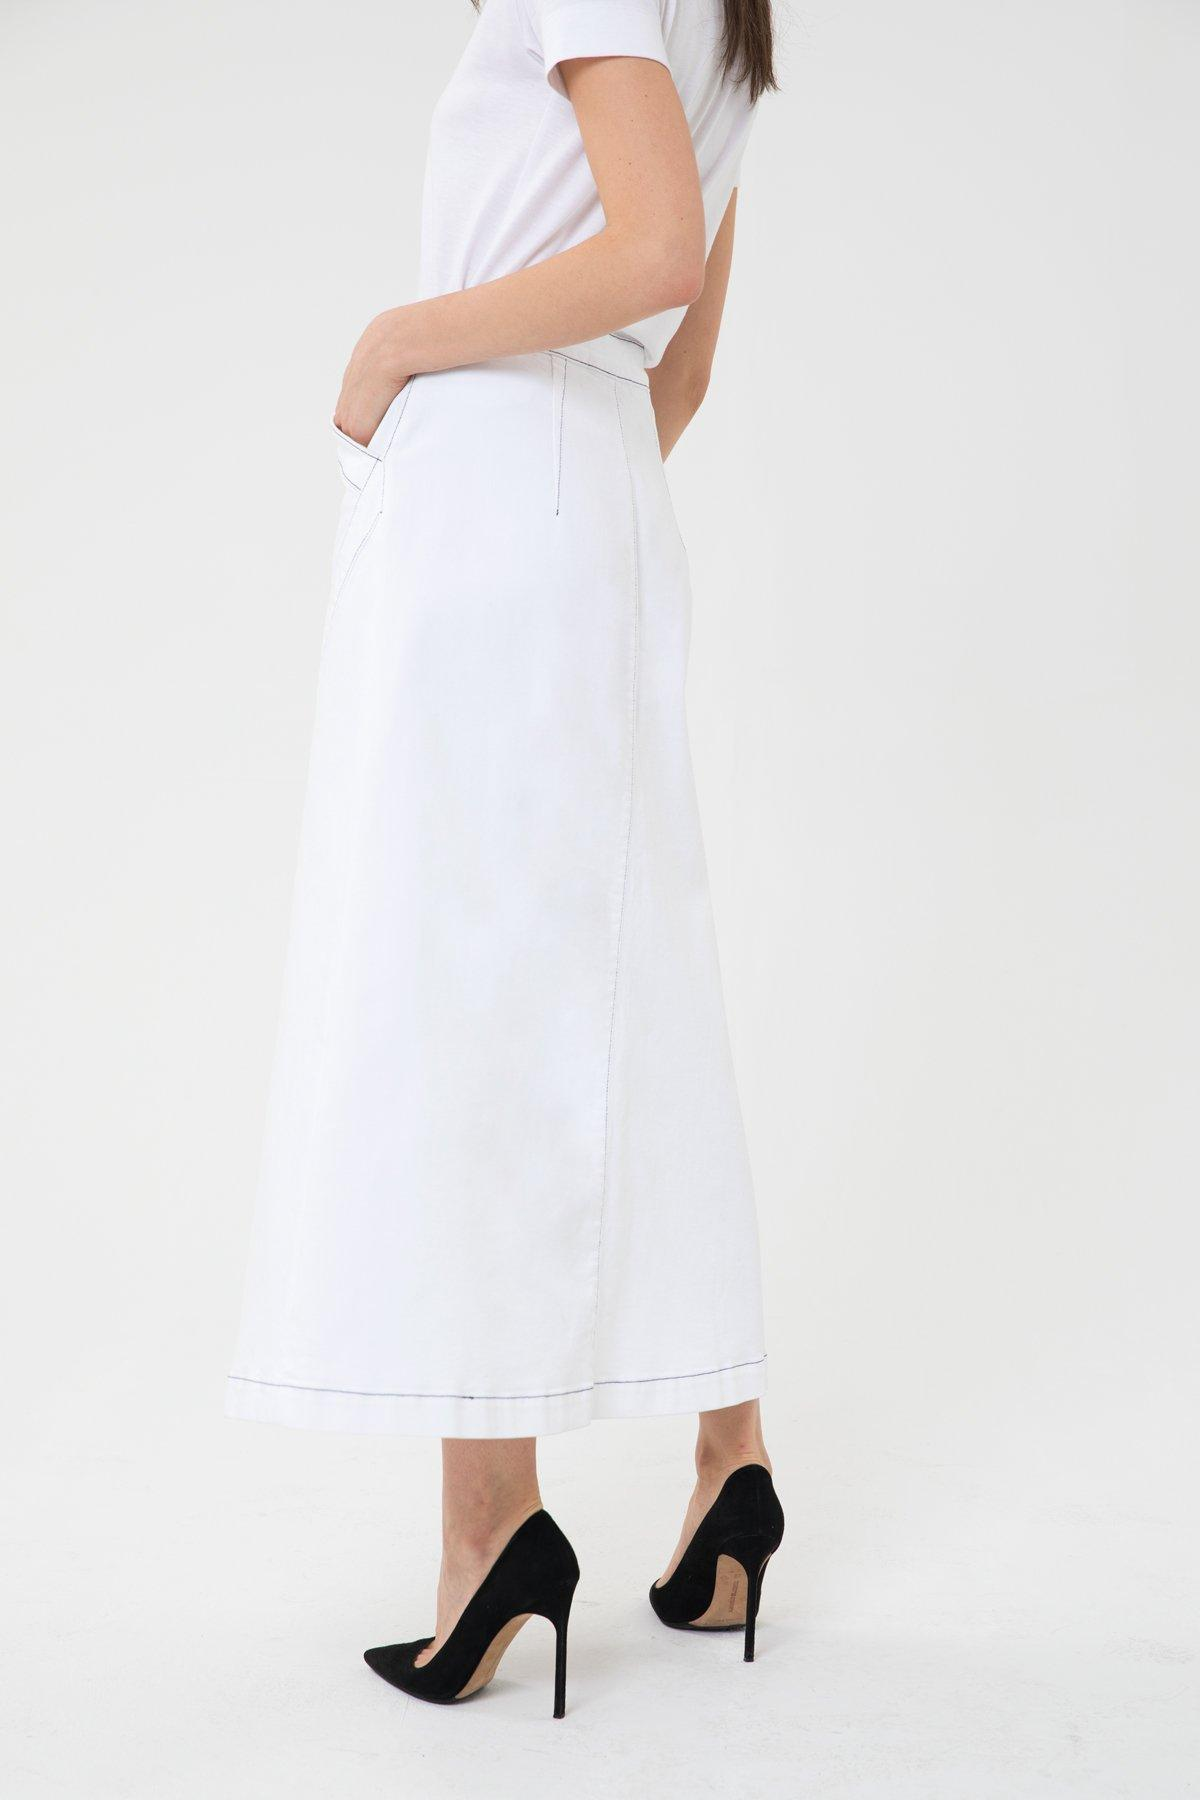 a7a217d8c3 Lyst - 3x1 And Jason Wu Long Skirt in White